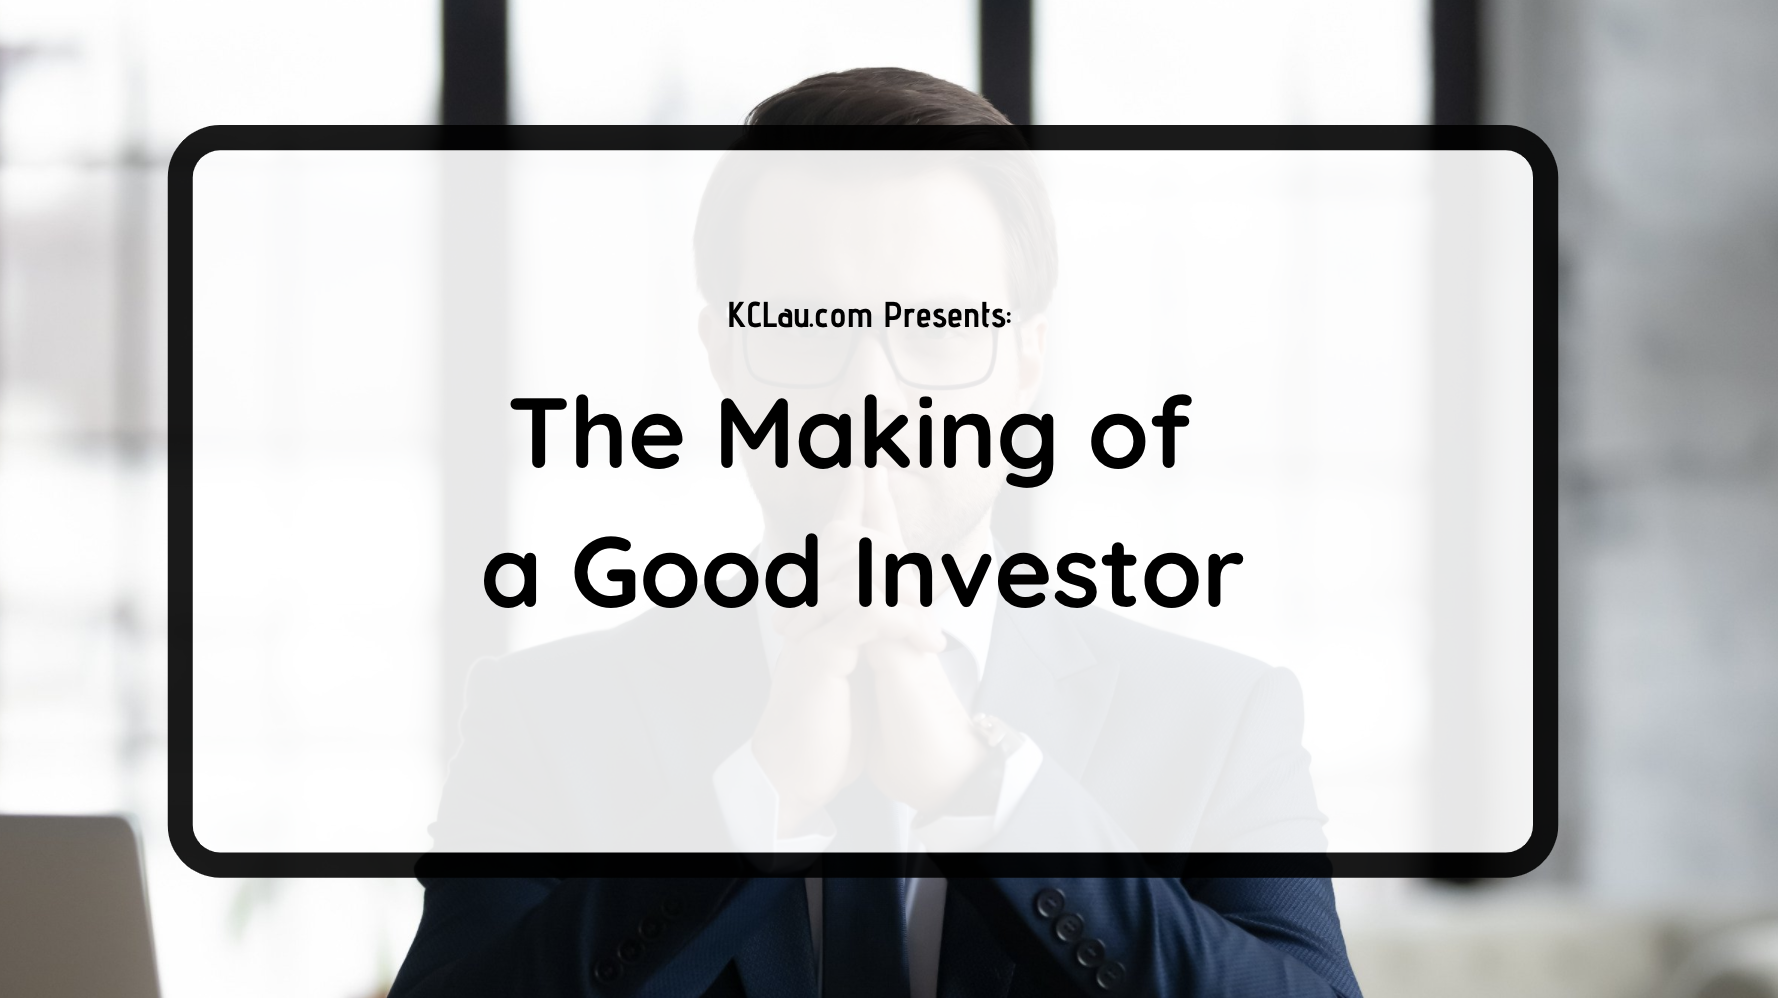 The Making of a Good Investor